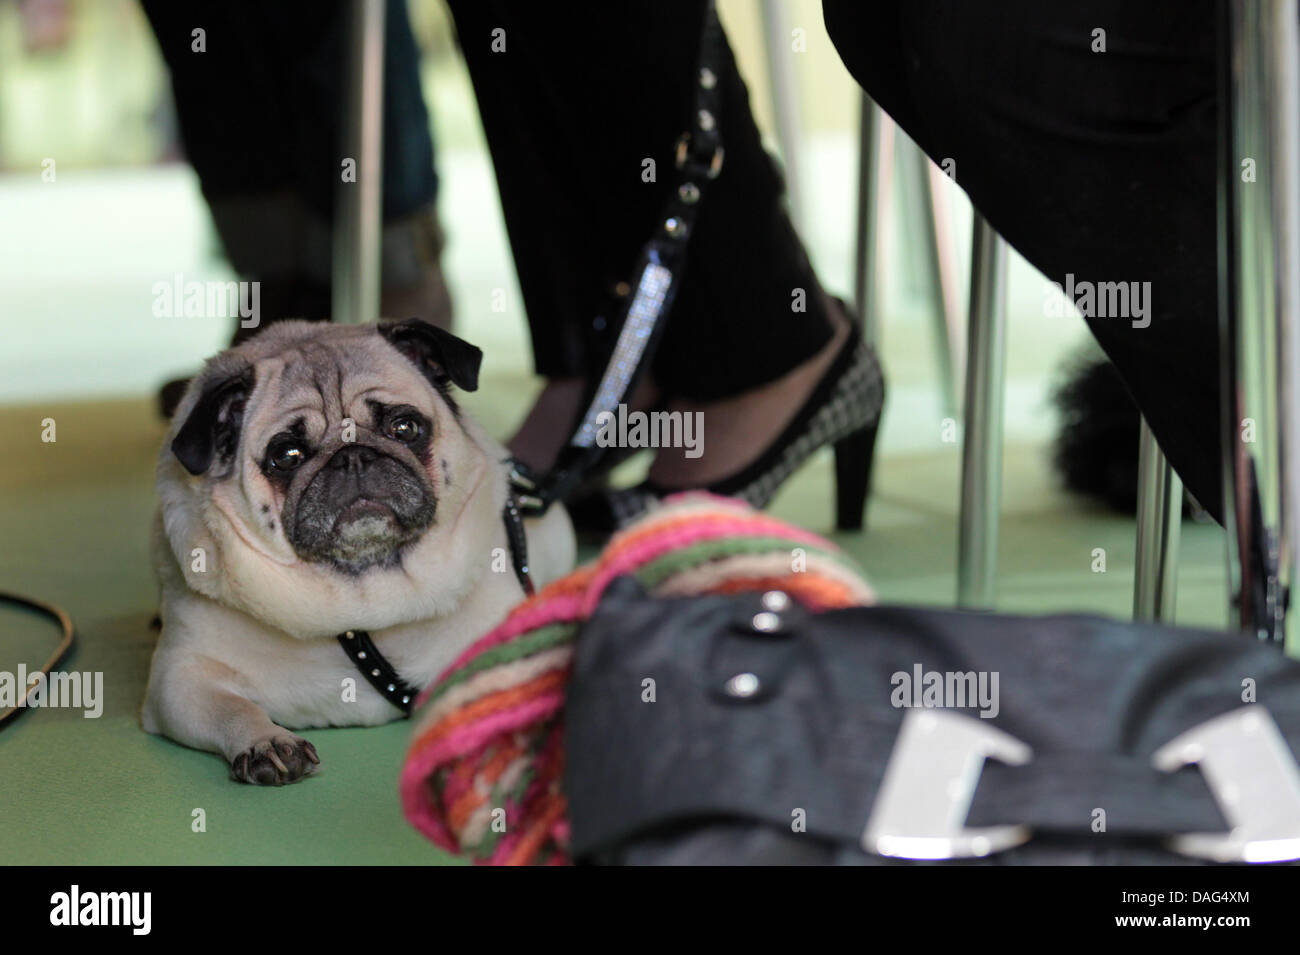 Publicist Uschi Ackermann's pug 'Sir Henry' lies down during the presentation of Ackermann's book - Stock Image